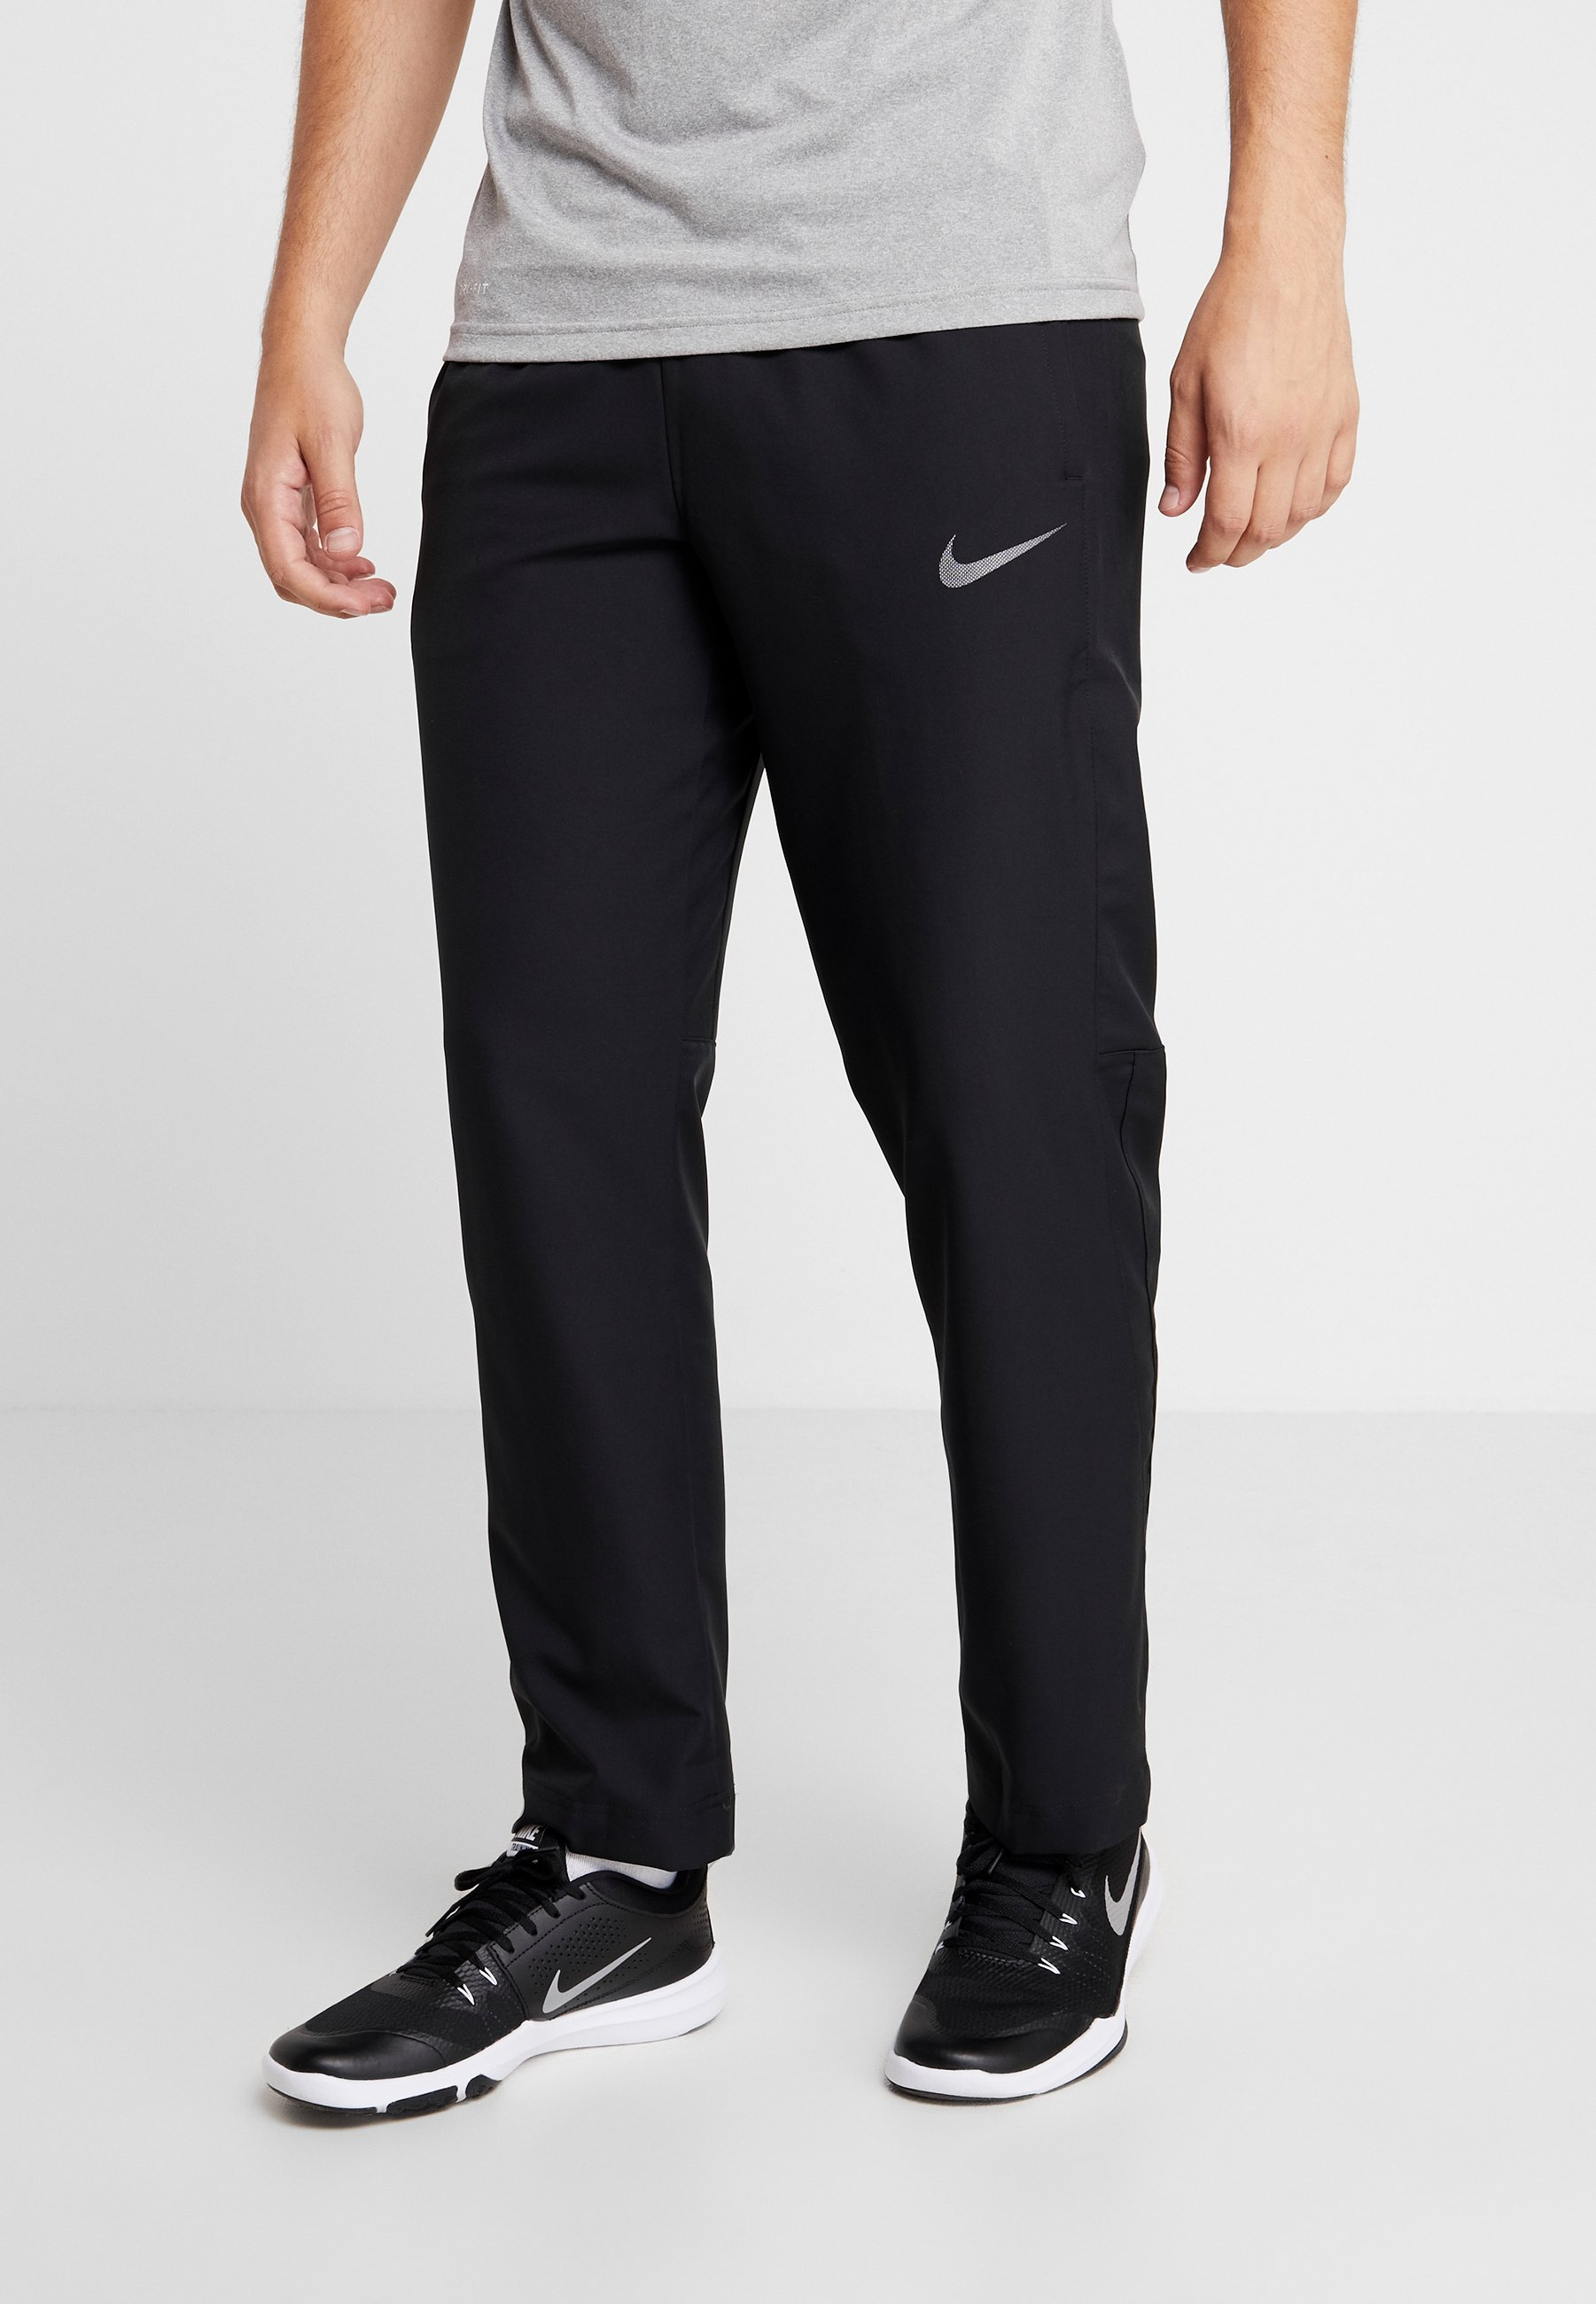 Explore Official Site Men's Clothing Nike Performance DRY PANT TEAM Tracksuit bottoms black/hematite vWFWMXNPl aND8PRhmj